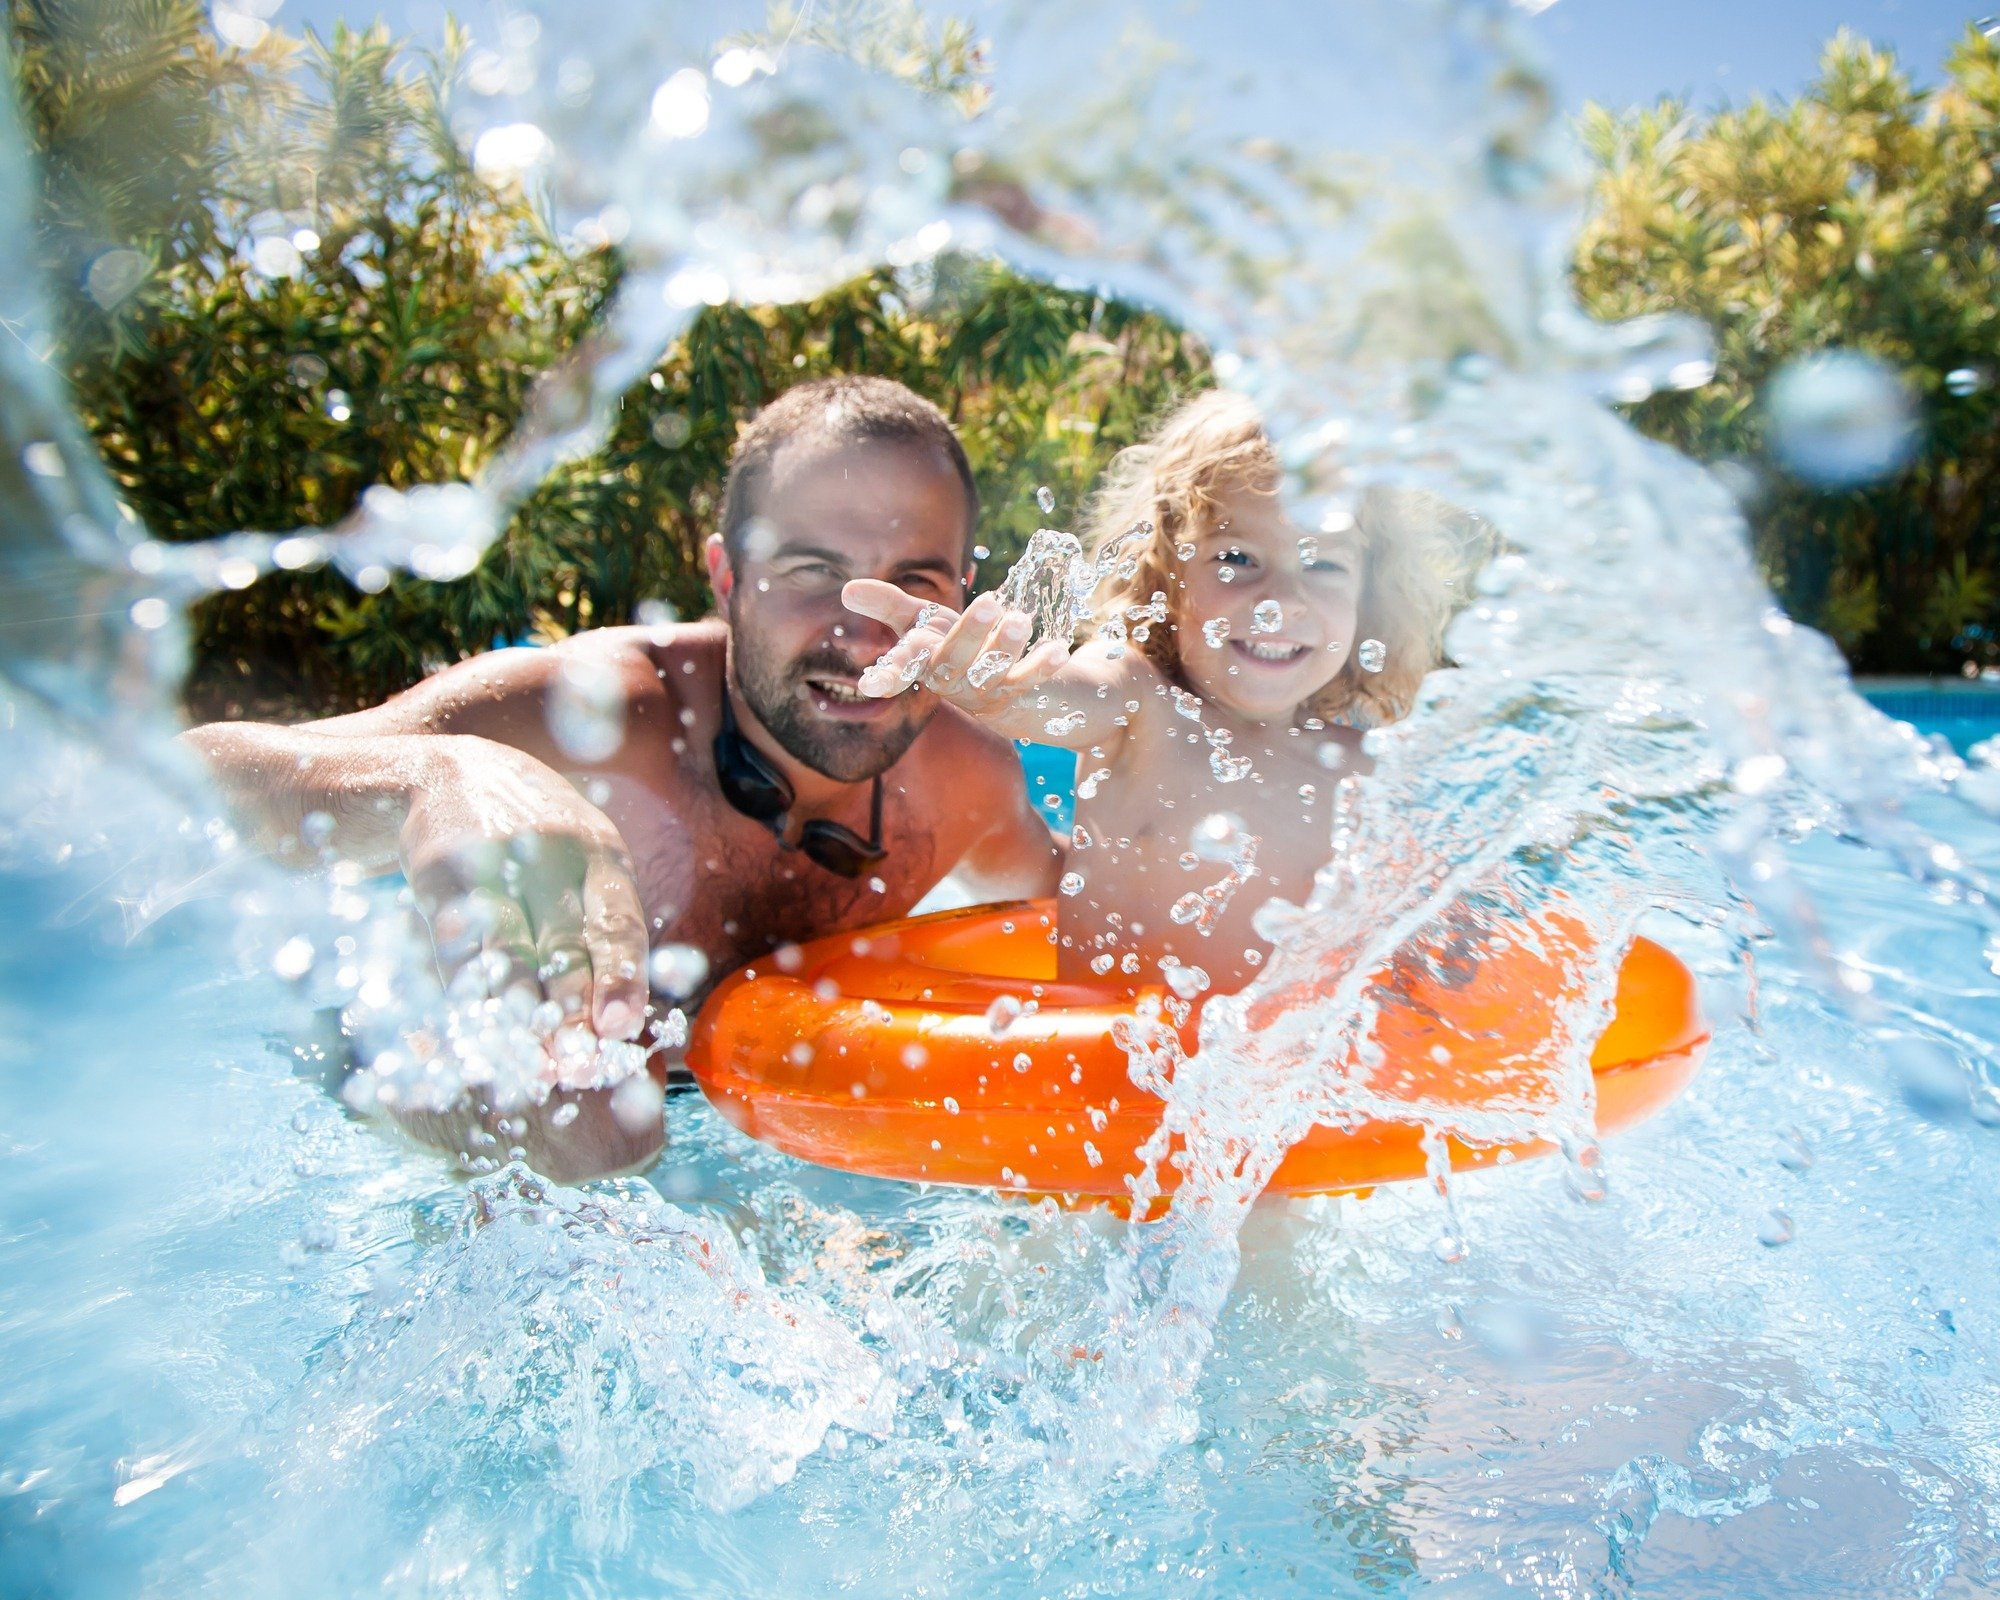 Dad and child swimming together on vacation